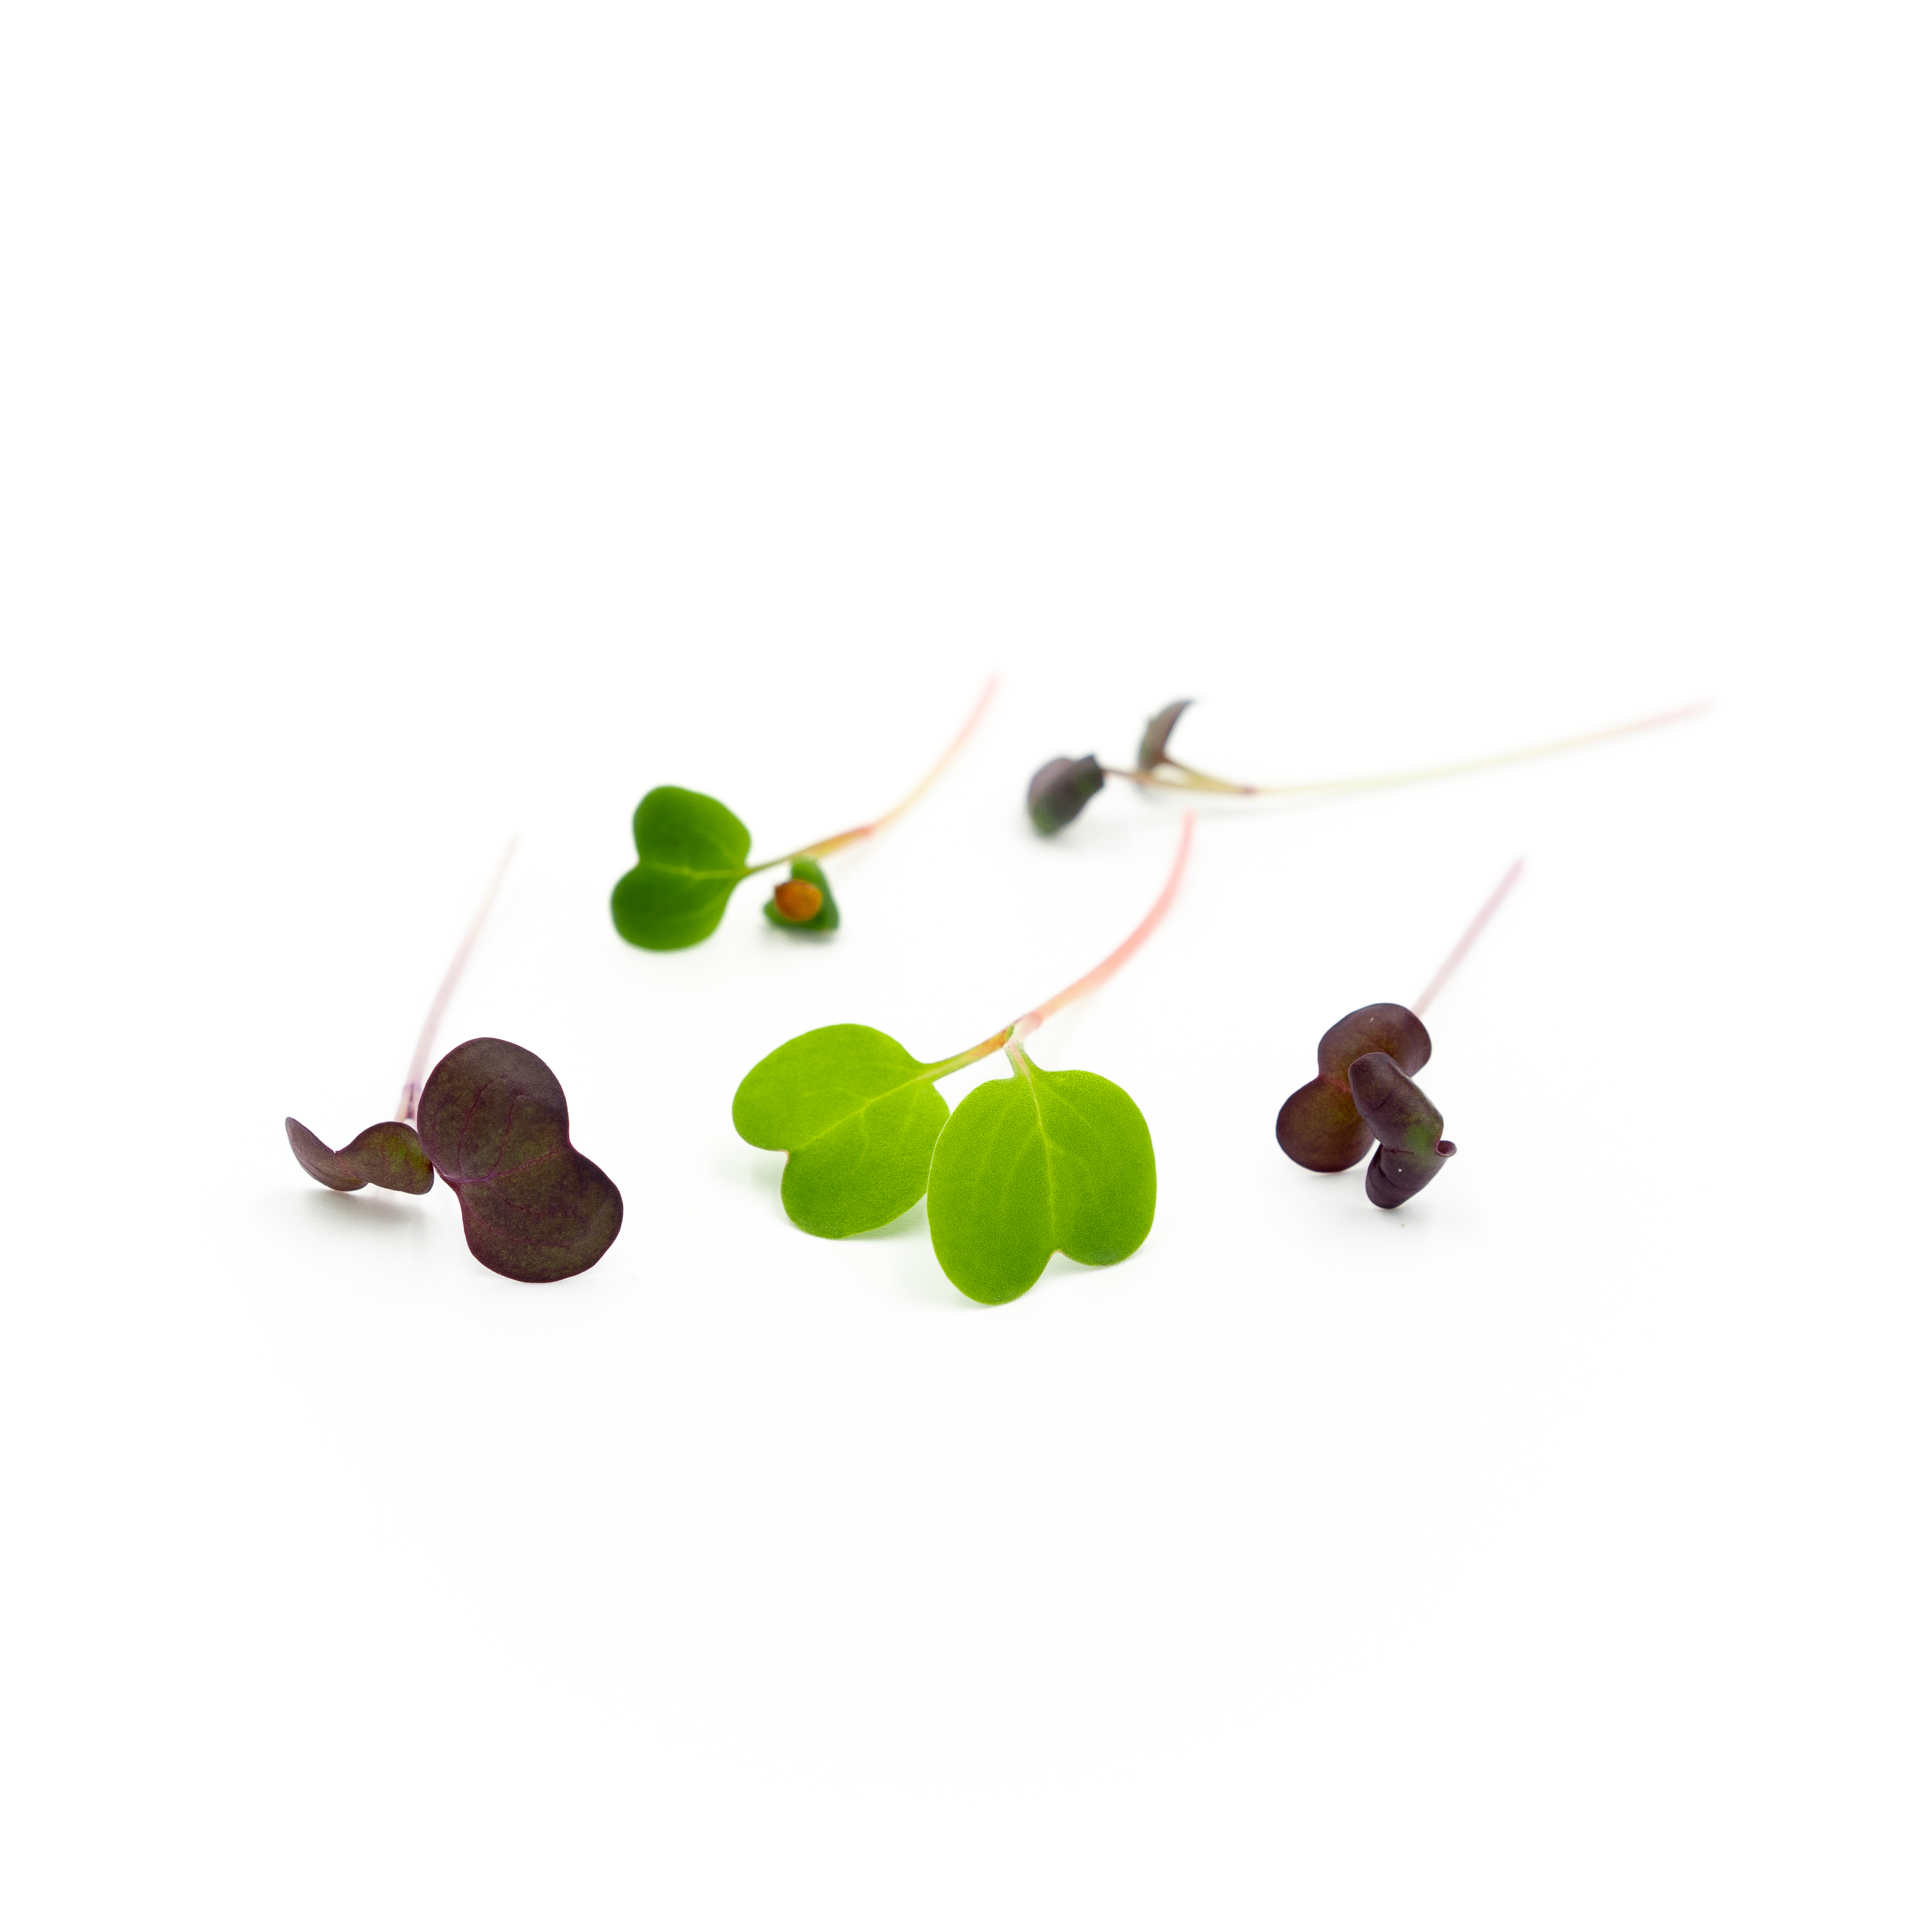 Spicy bright-green leaves and multi-colored watery-crisp stems